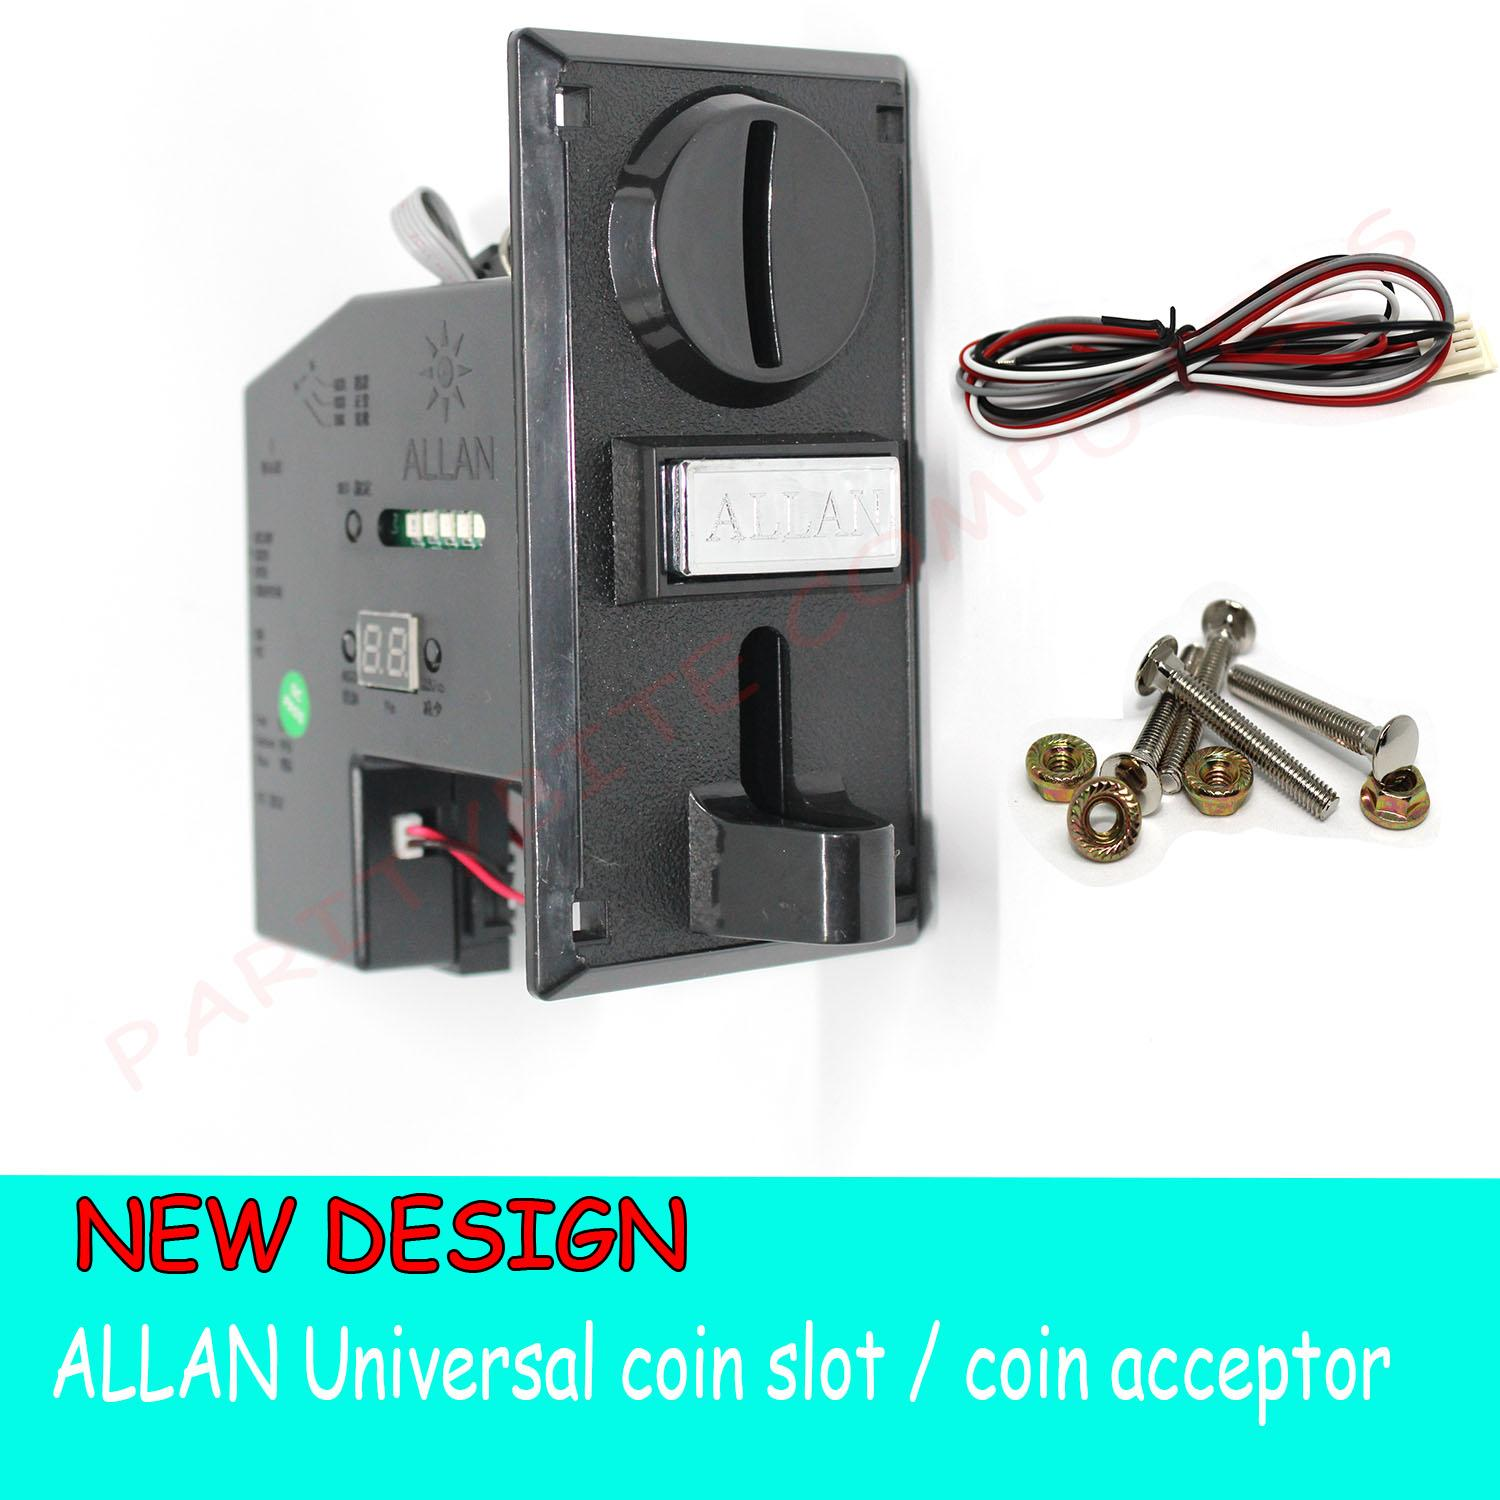 Build Your Own Pc For Sale Building Prices Brands Specs In Wiring Allan Universal Coin Slot Acceptor New Design